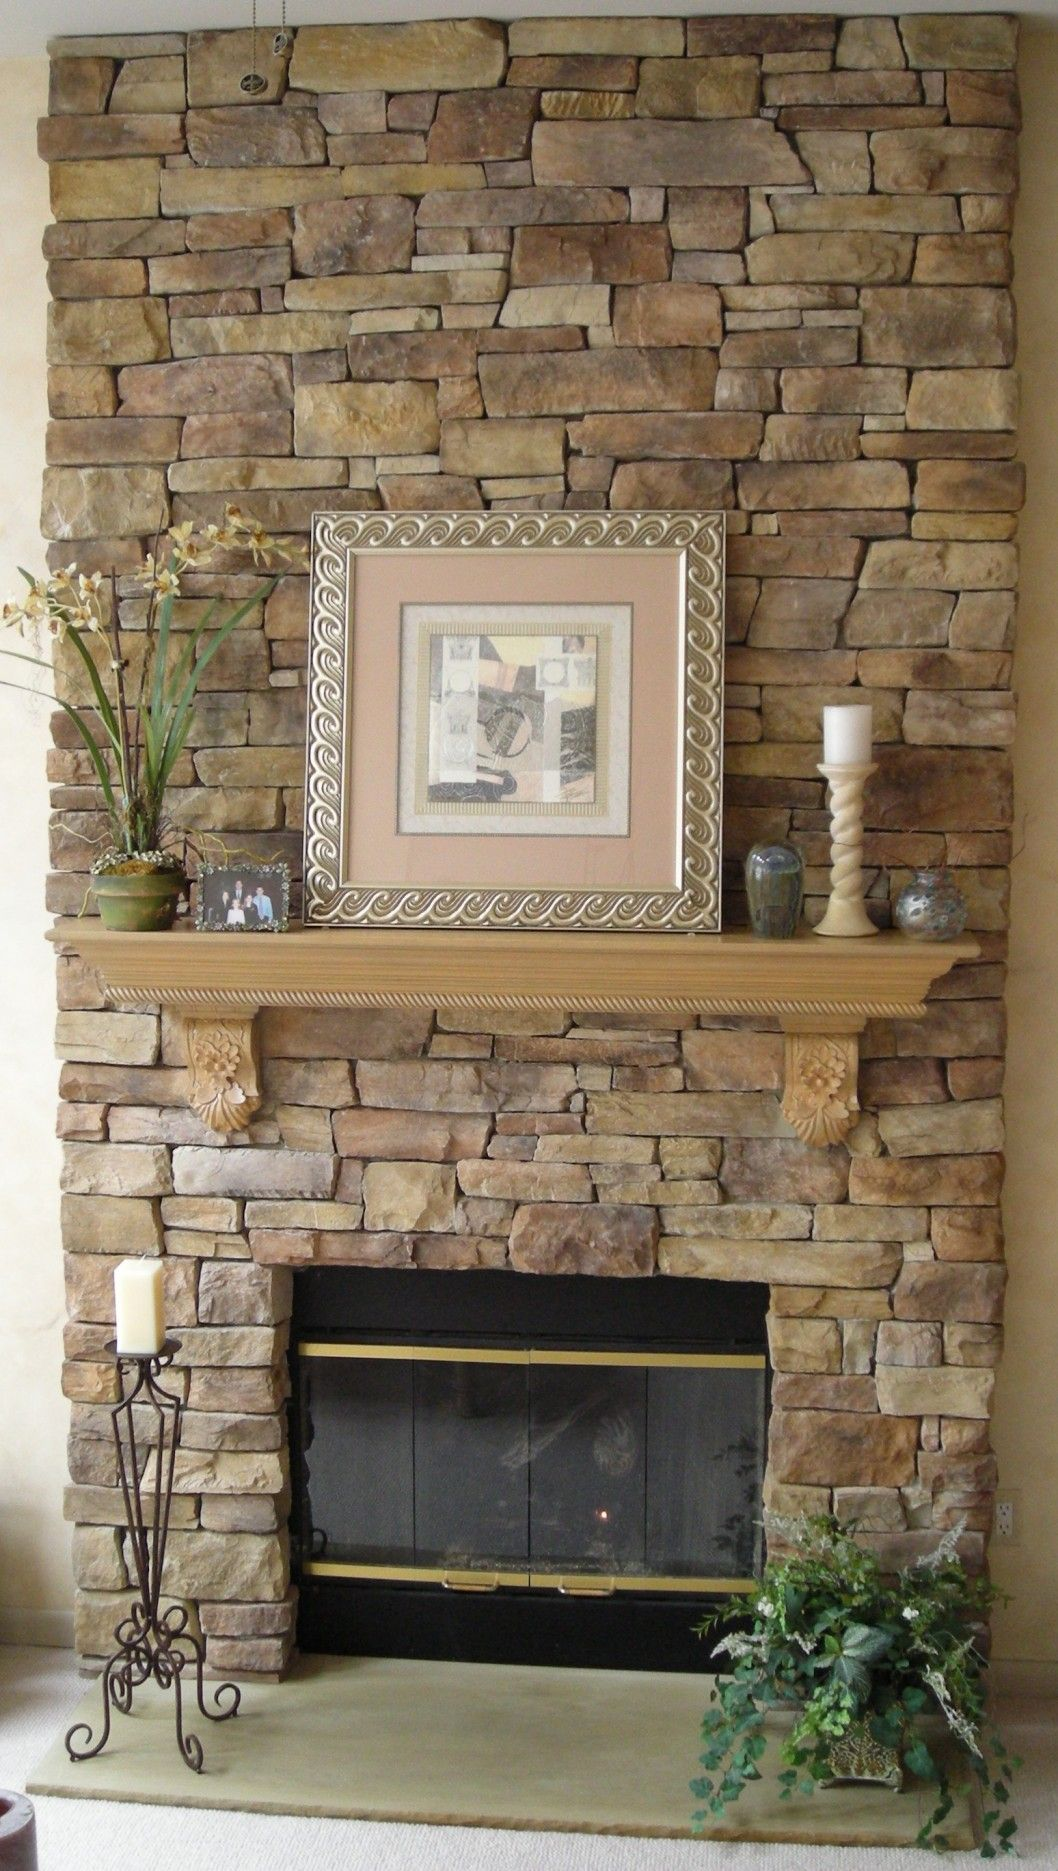 fireplace stone wall decoration ideas for modern home design interior fireplace stone ideas brick veneer corner gas fireplace stone outdoor fireplace - Corner Gas Fireplace Design Ideas